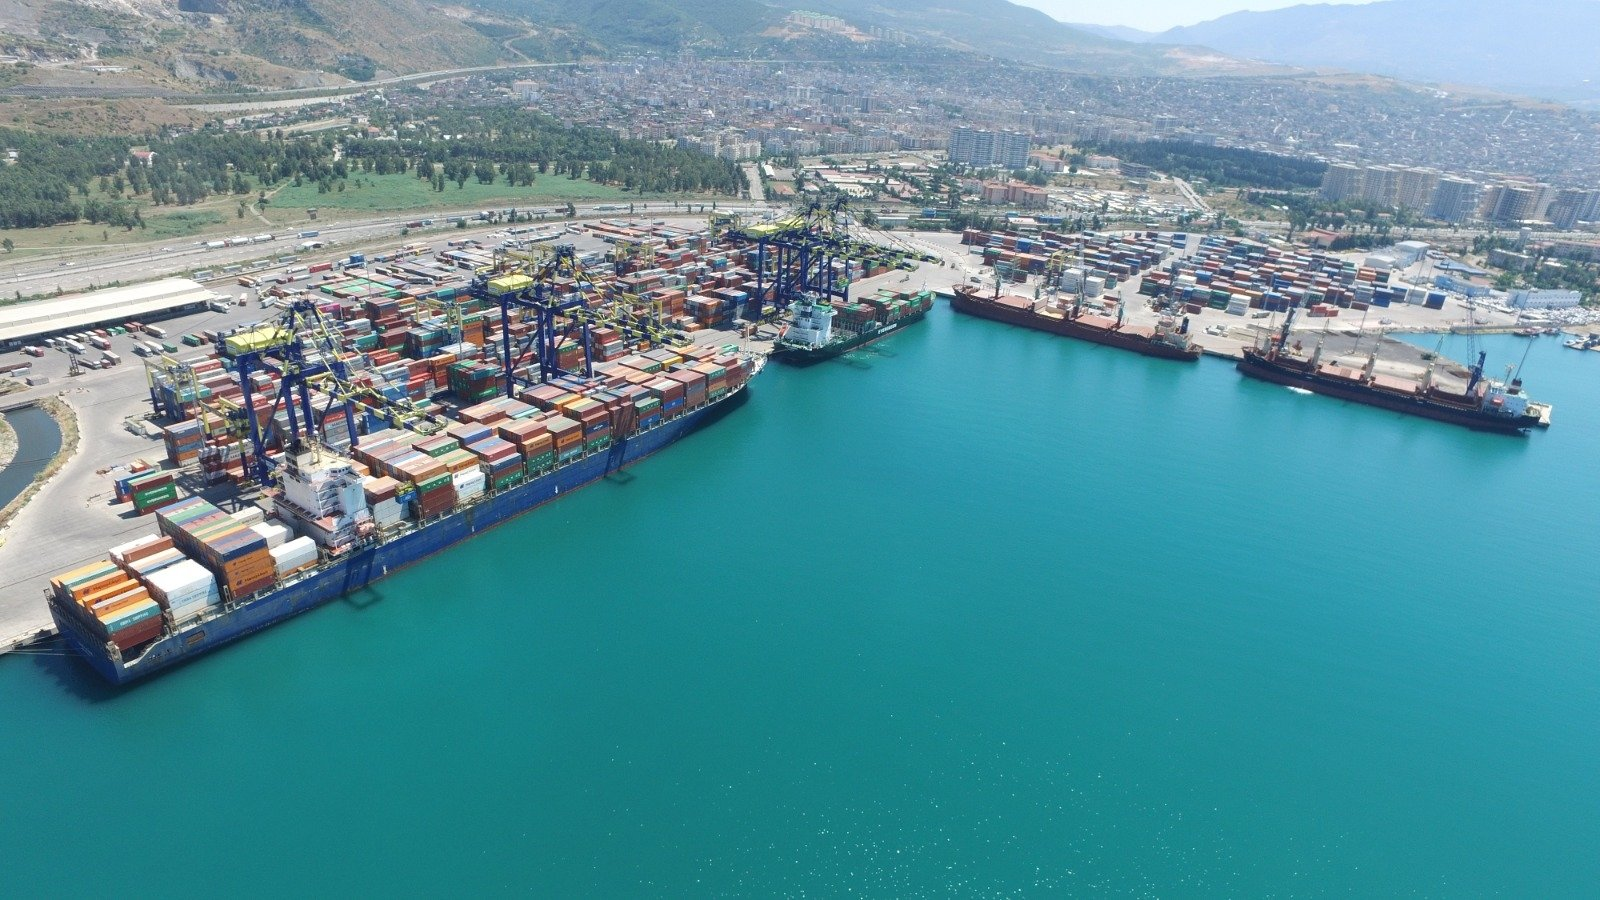 The water is still at the LimakPort Iskenderun International Port in Hatay province, southern Turkey, Aug. 12, 2020. (AA Photo)